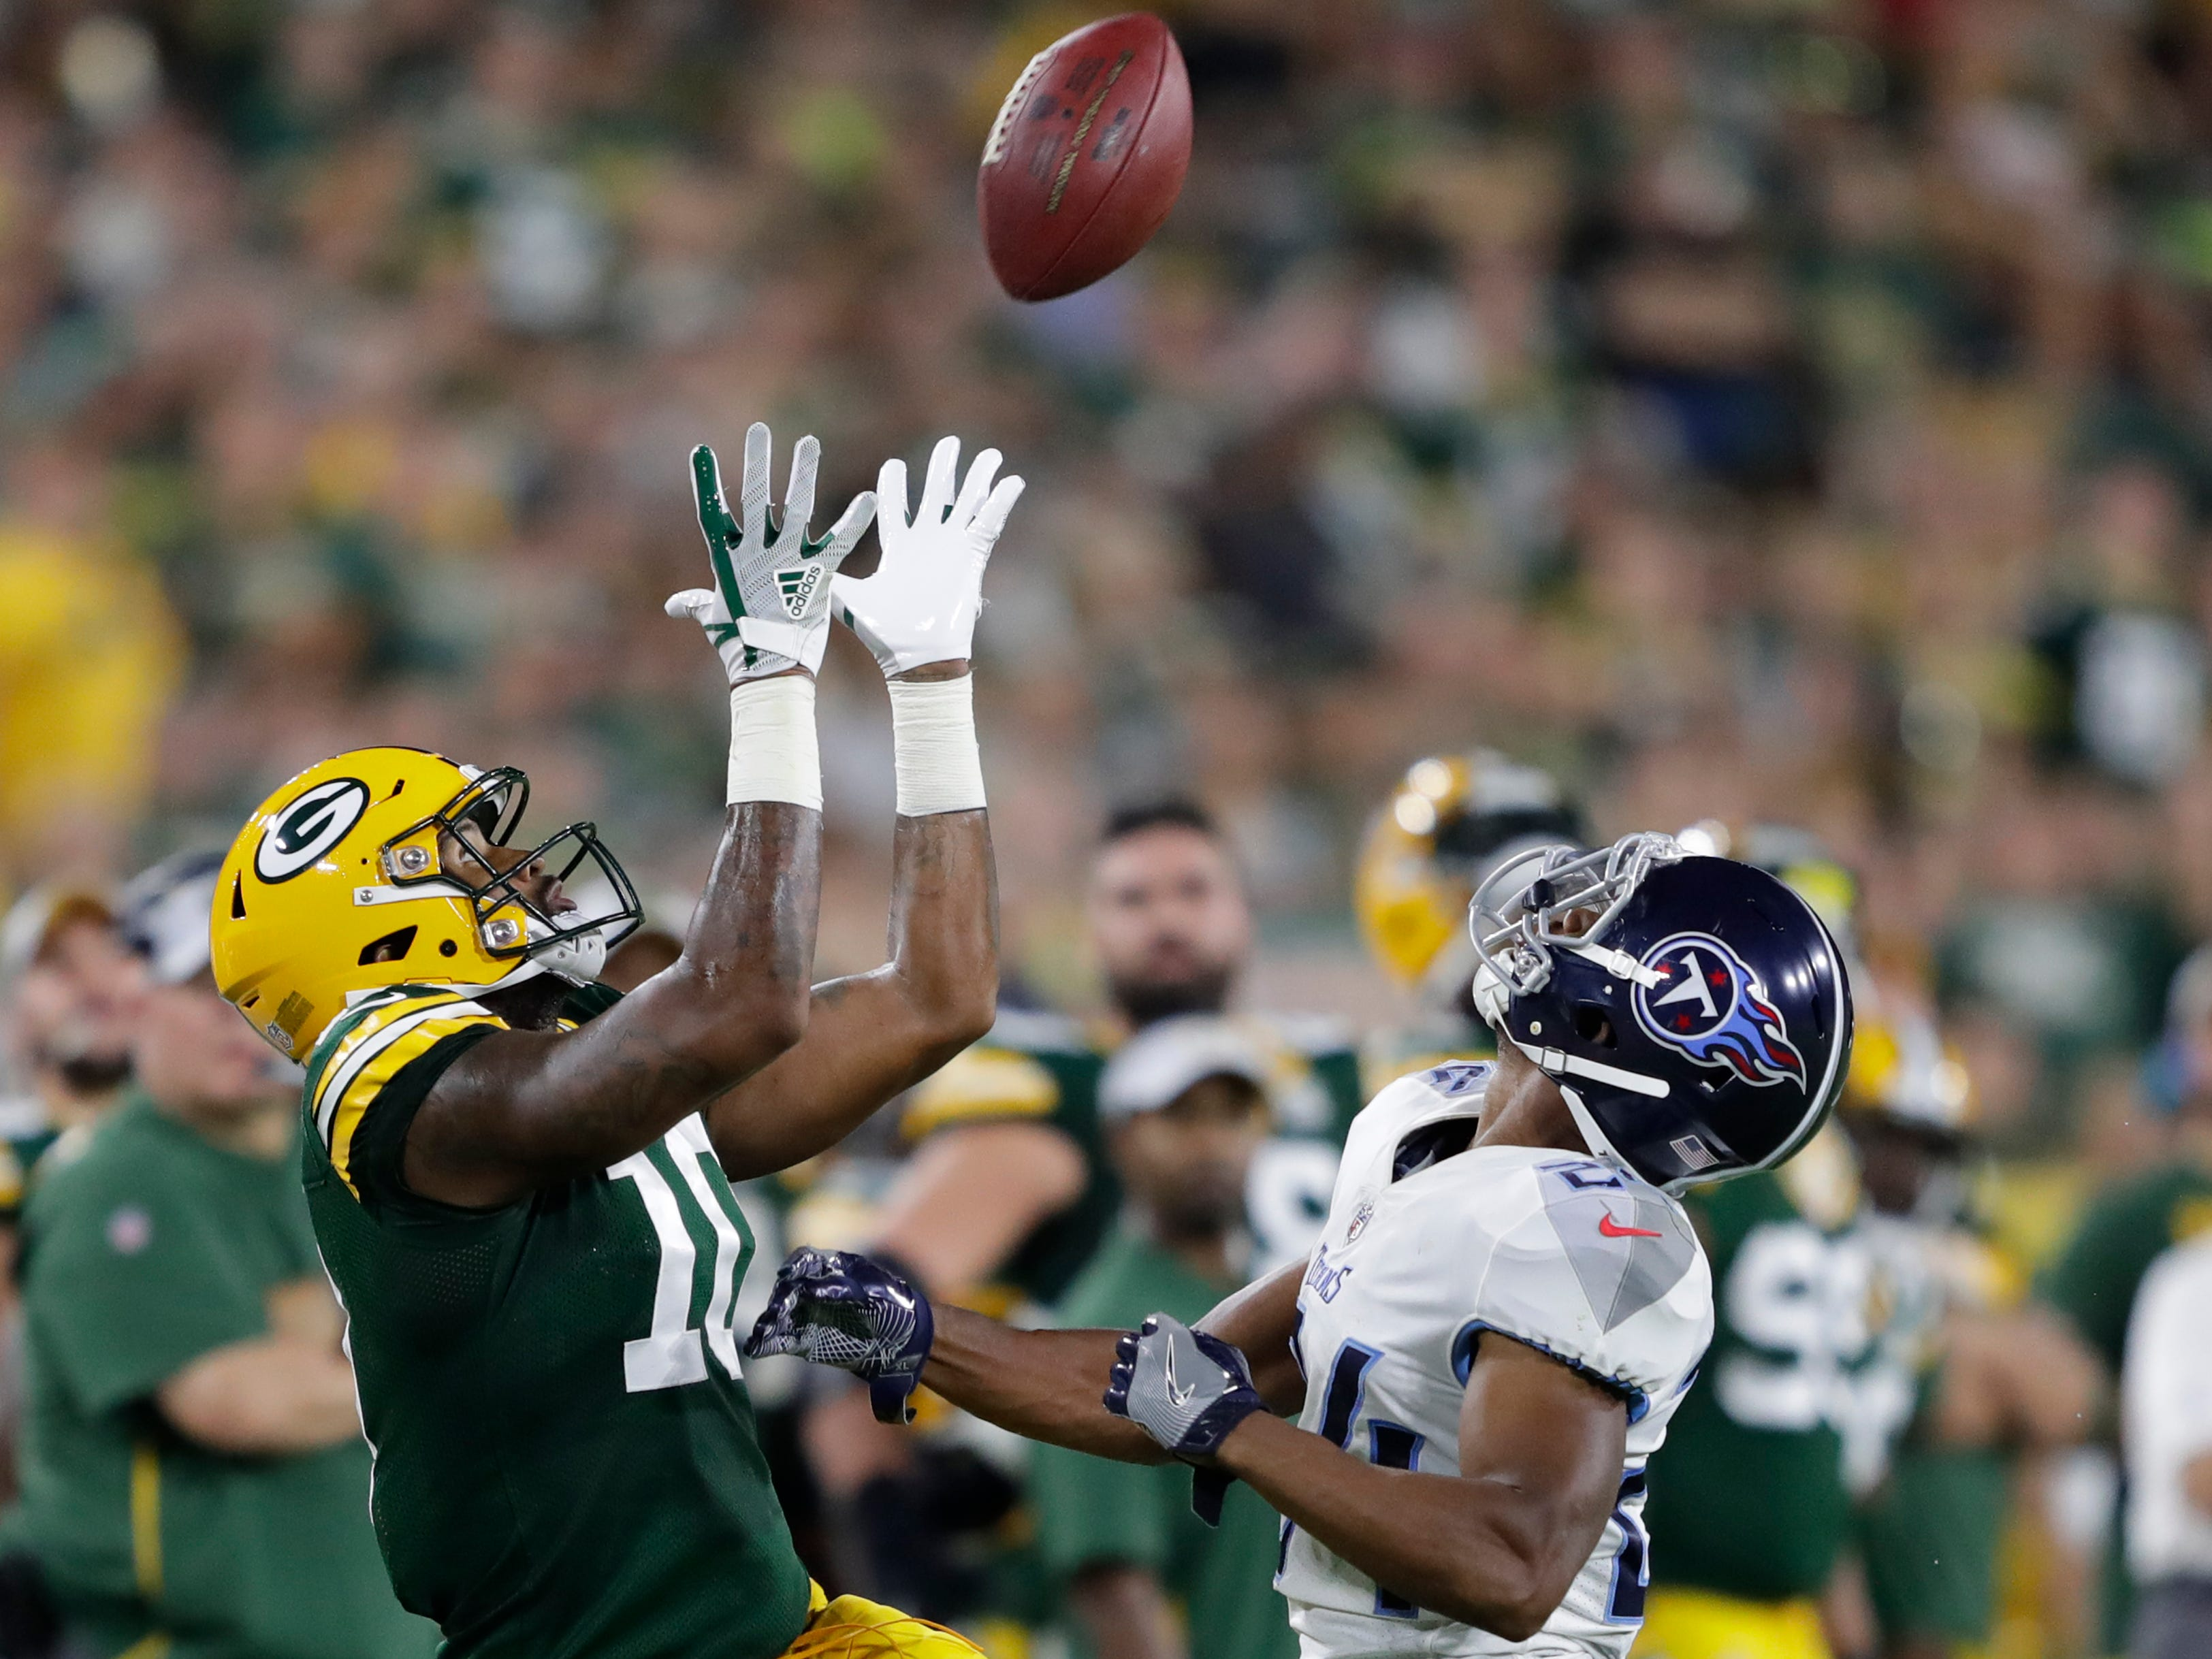 Green Bay Packers wide receiver DeAngelo Yancey (10) is out of bounds on a reception attempt against Tennessee Titans defensive back Kalan Reed (24) during their football game Thursday, August 9, 2018, at Lambeau Field in Green Bay, Wis.